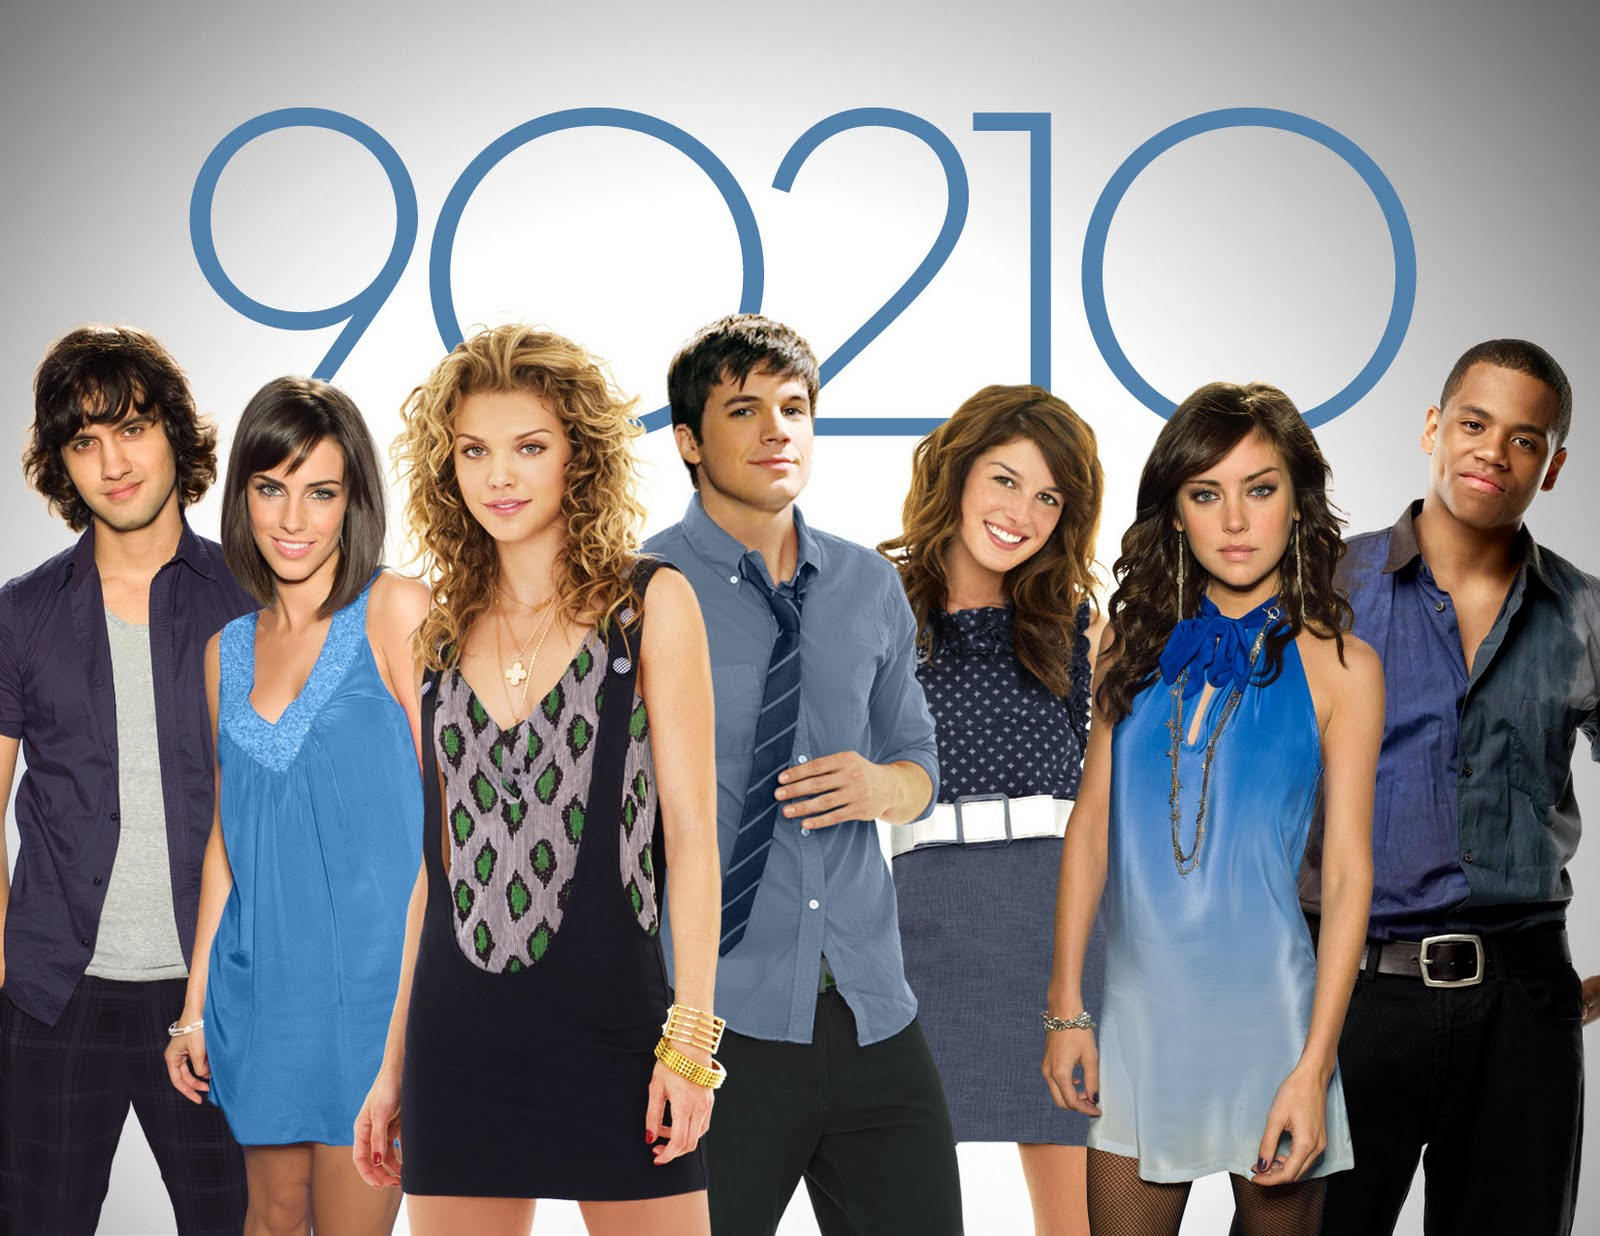 90210 season 4 online free episode 5 / Comedy shows new orleans